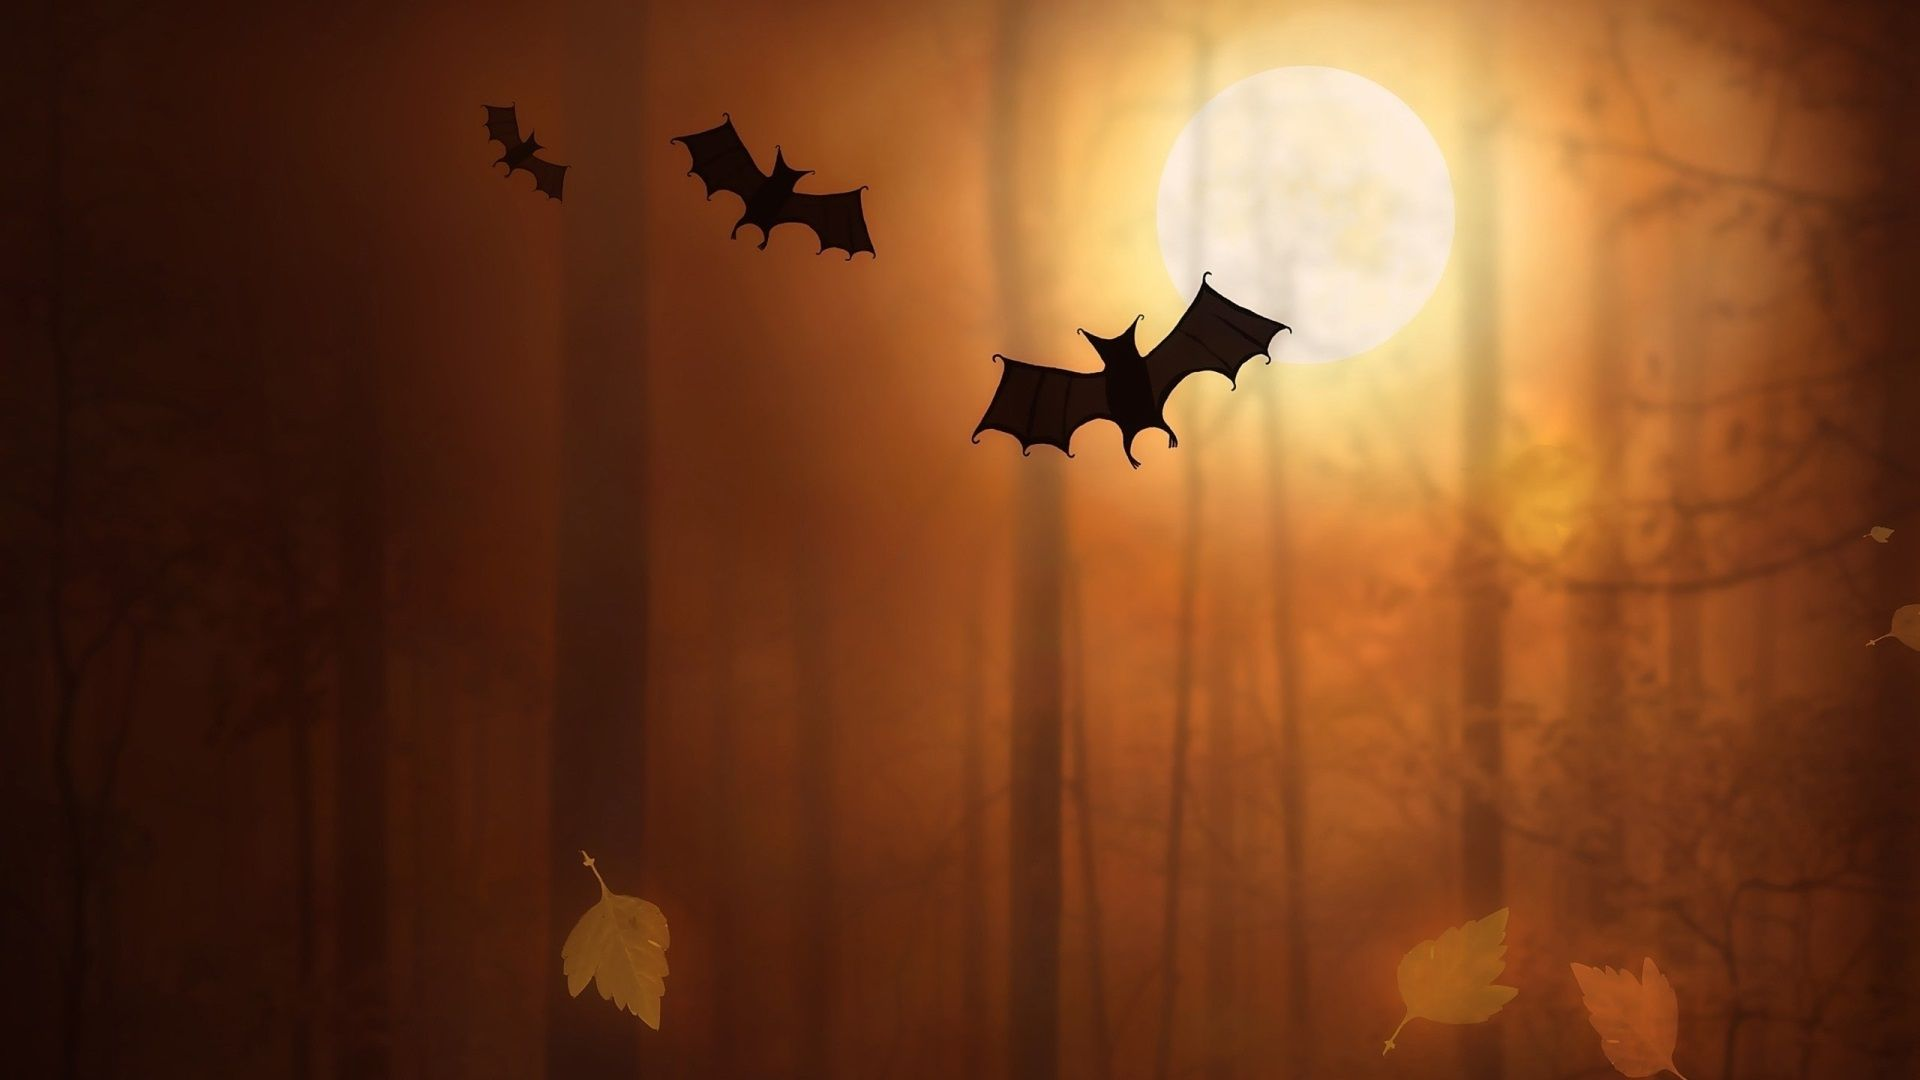 1920x1080 Halloween Night Free Wallpaper Downloads For Pc Halloween Wallpaper Halloween Desktop Wallpaper Halloween Backgrounds